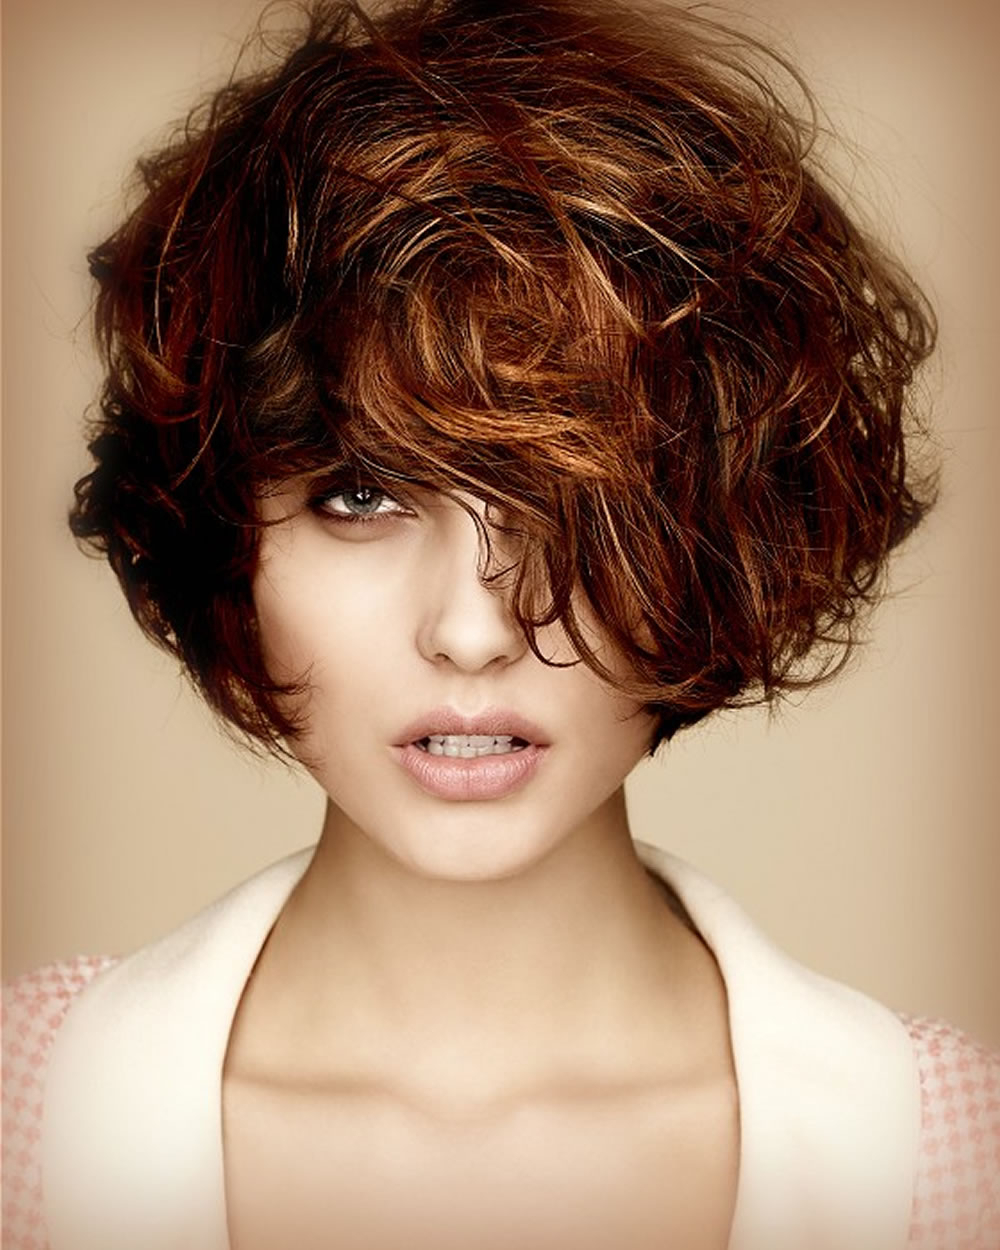 31 Chic Short Haircut Ideas 2018 & Pixie & Bob Hair Inspiration For Within Messy Pixie Bob Hairstyles (View 7 of 20)